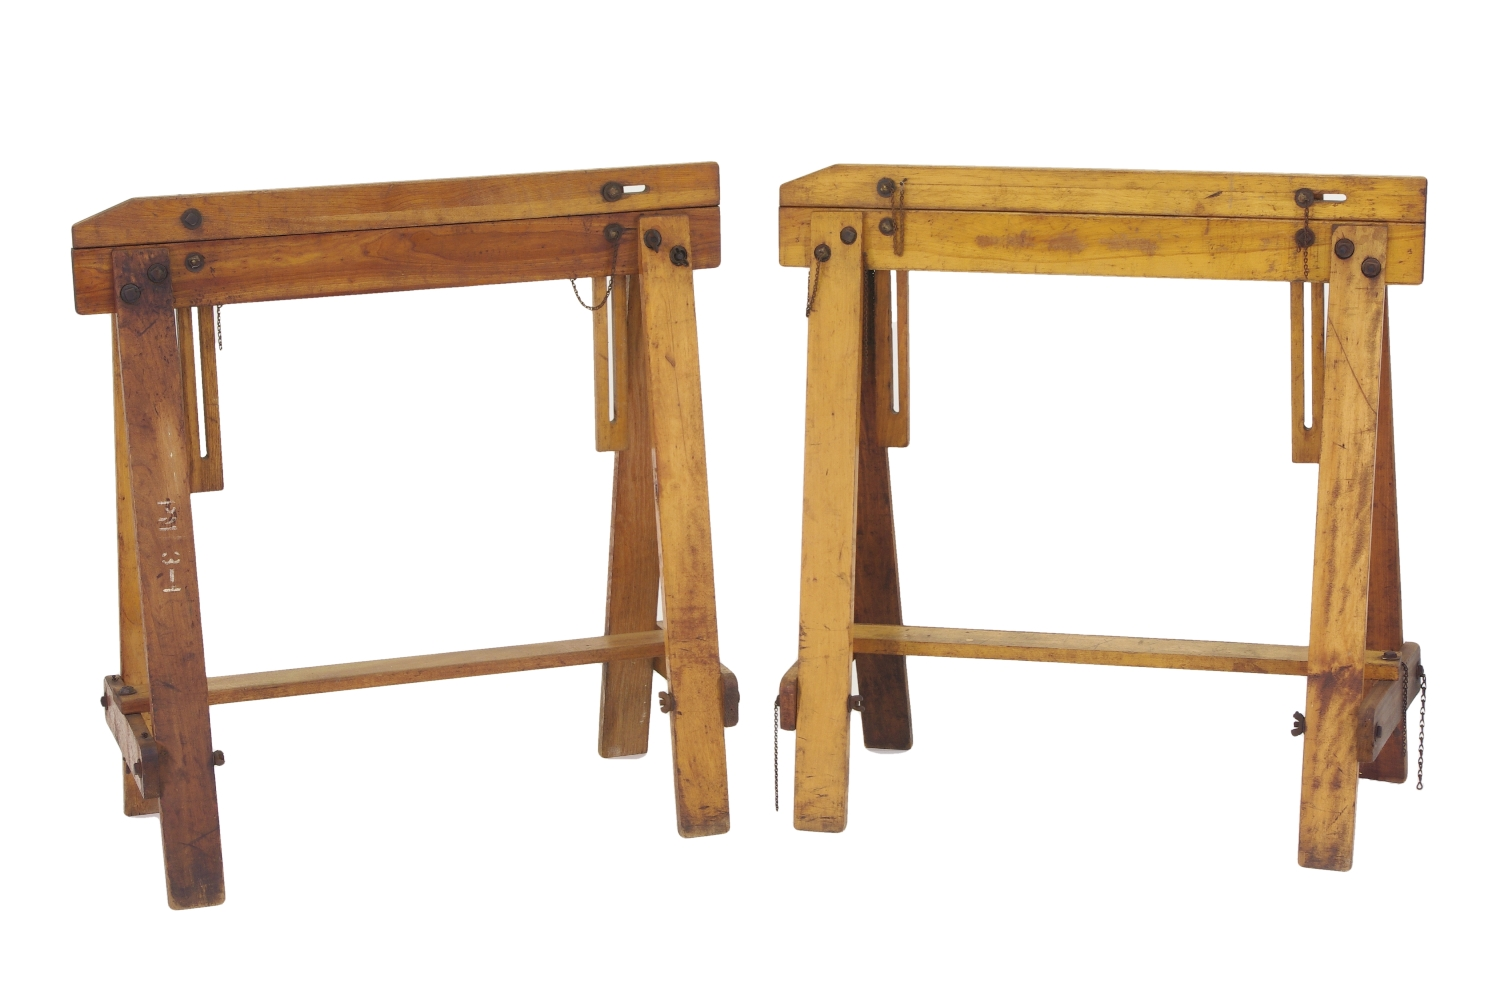 View 1: Pair of Adjustable Sawhorses c. 1920